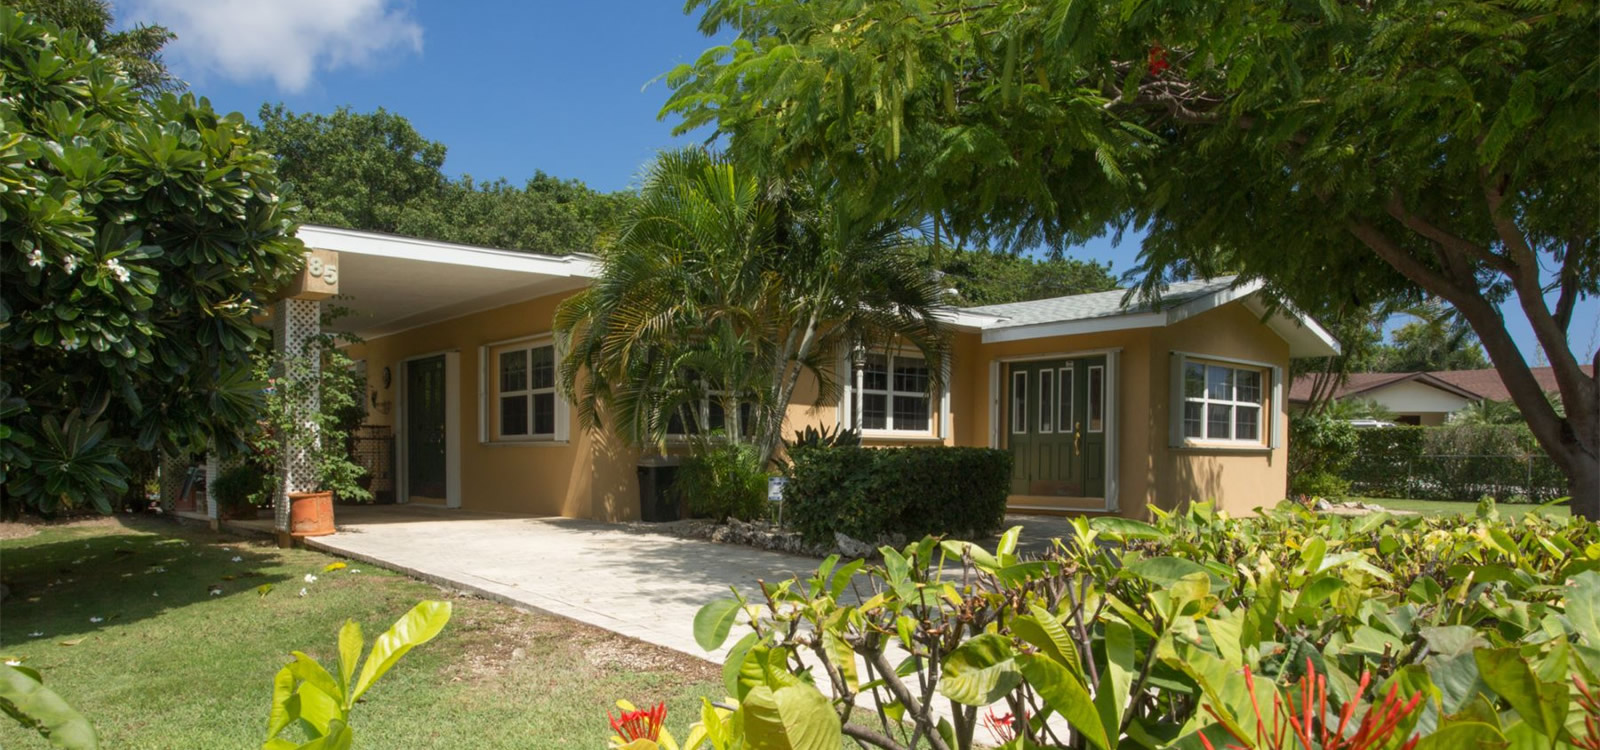 3 Bedroom Family Home for Sale, Coral Gables, West Bay, Grand Cayman ...